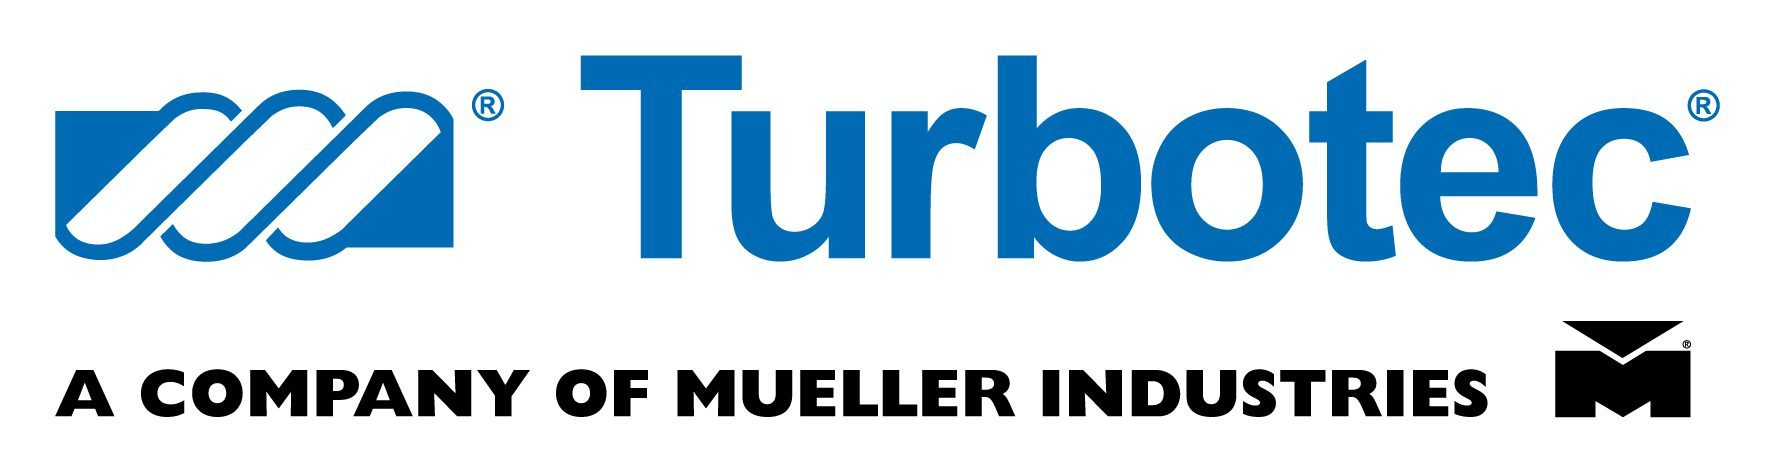 Turbotec Products, Inc. – Customer Driven, Now More Than Ever